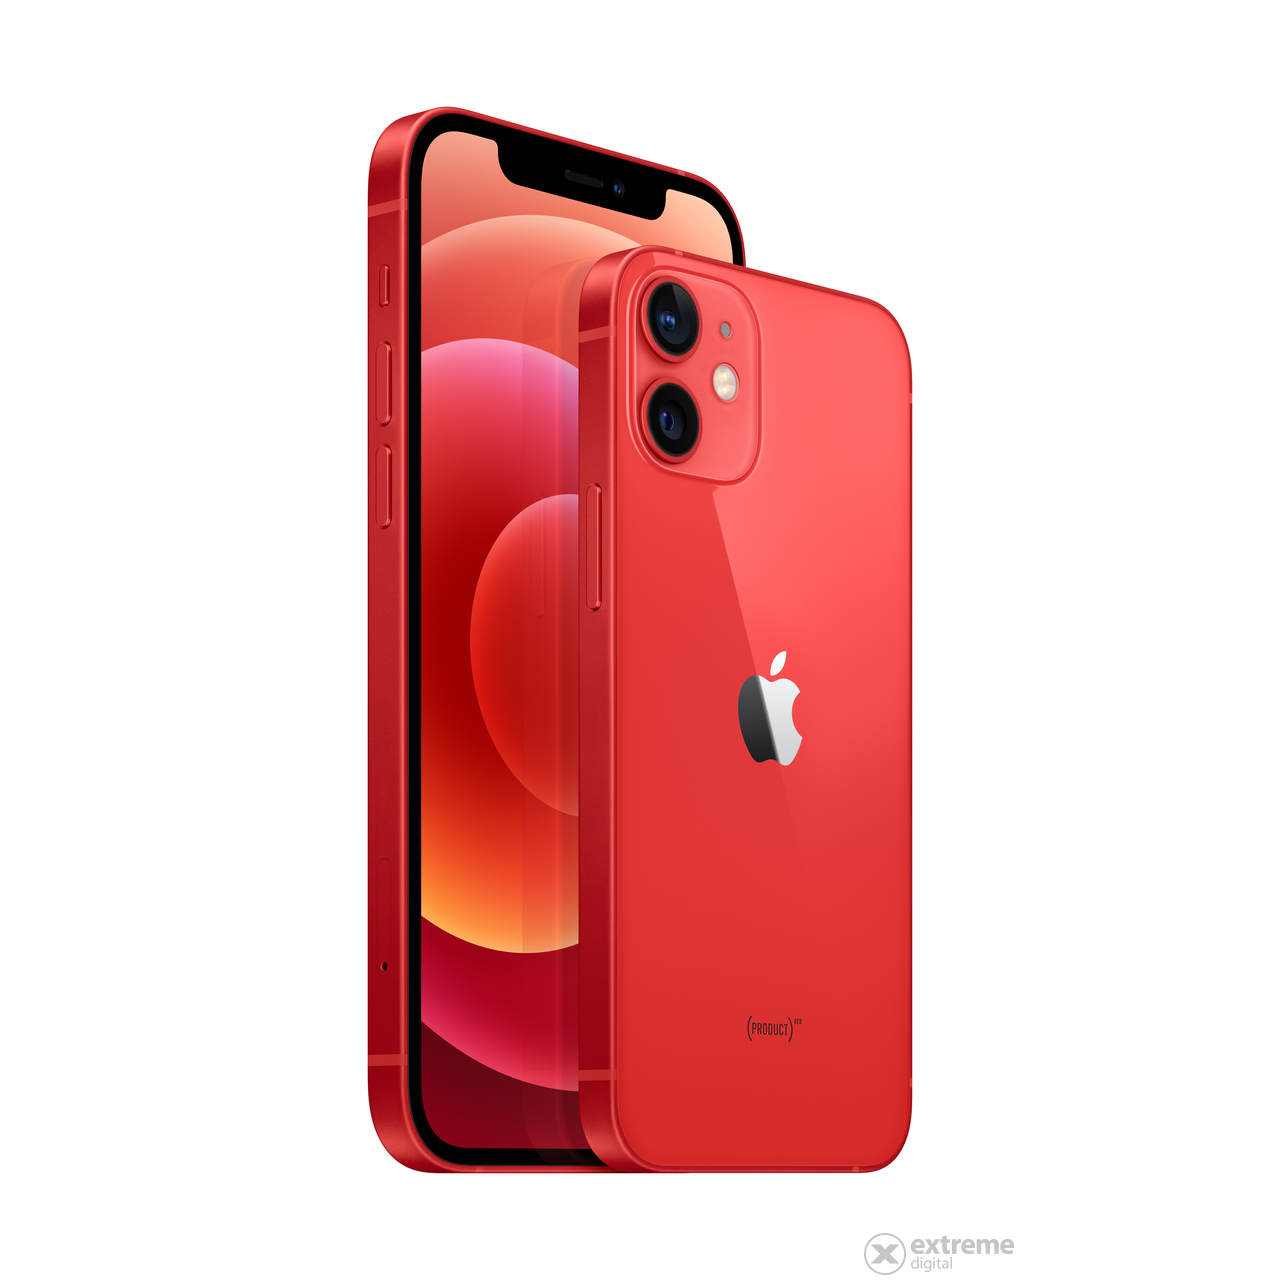 Apple iPhone 12 128GB okostelefon (mgjd3gh/a), (PRODUCT)RED